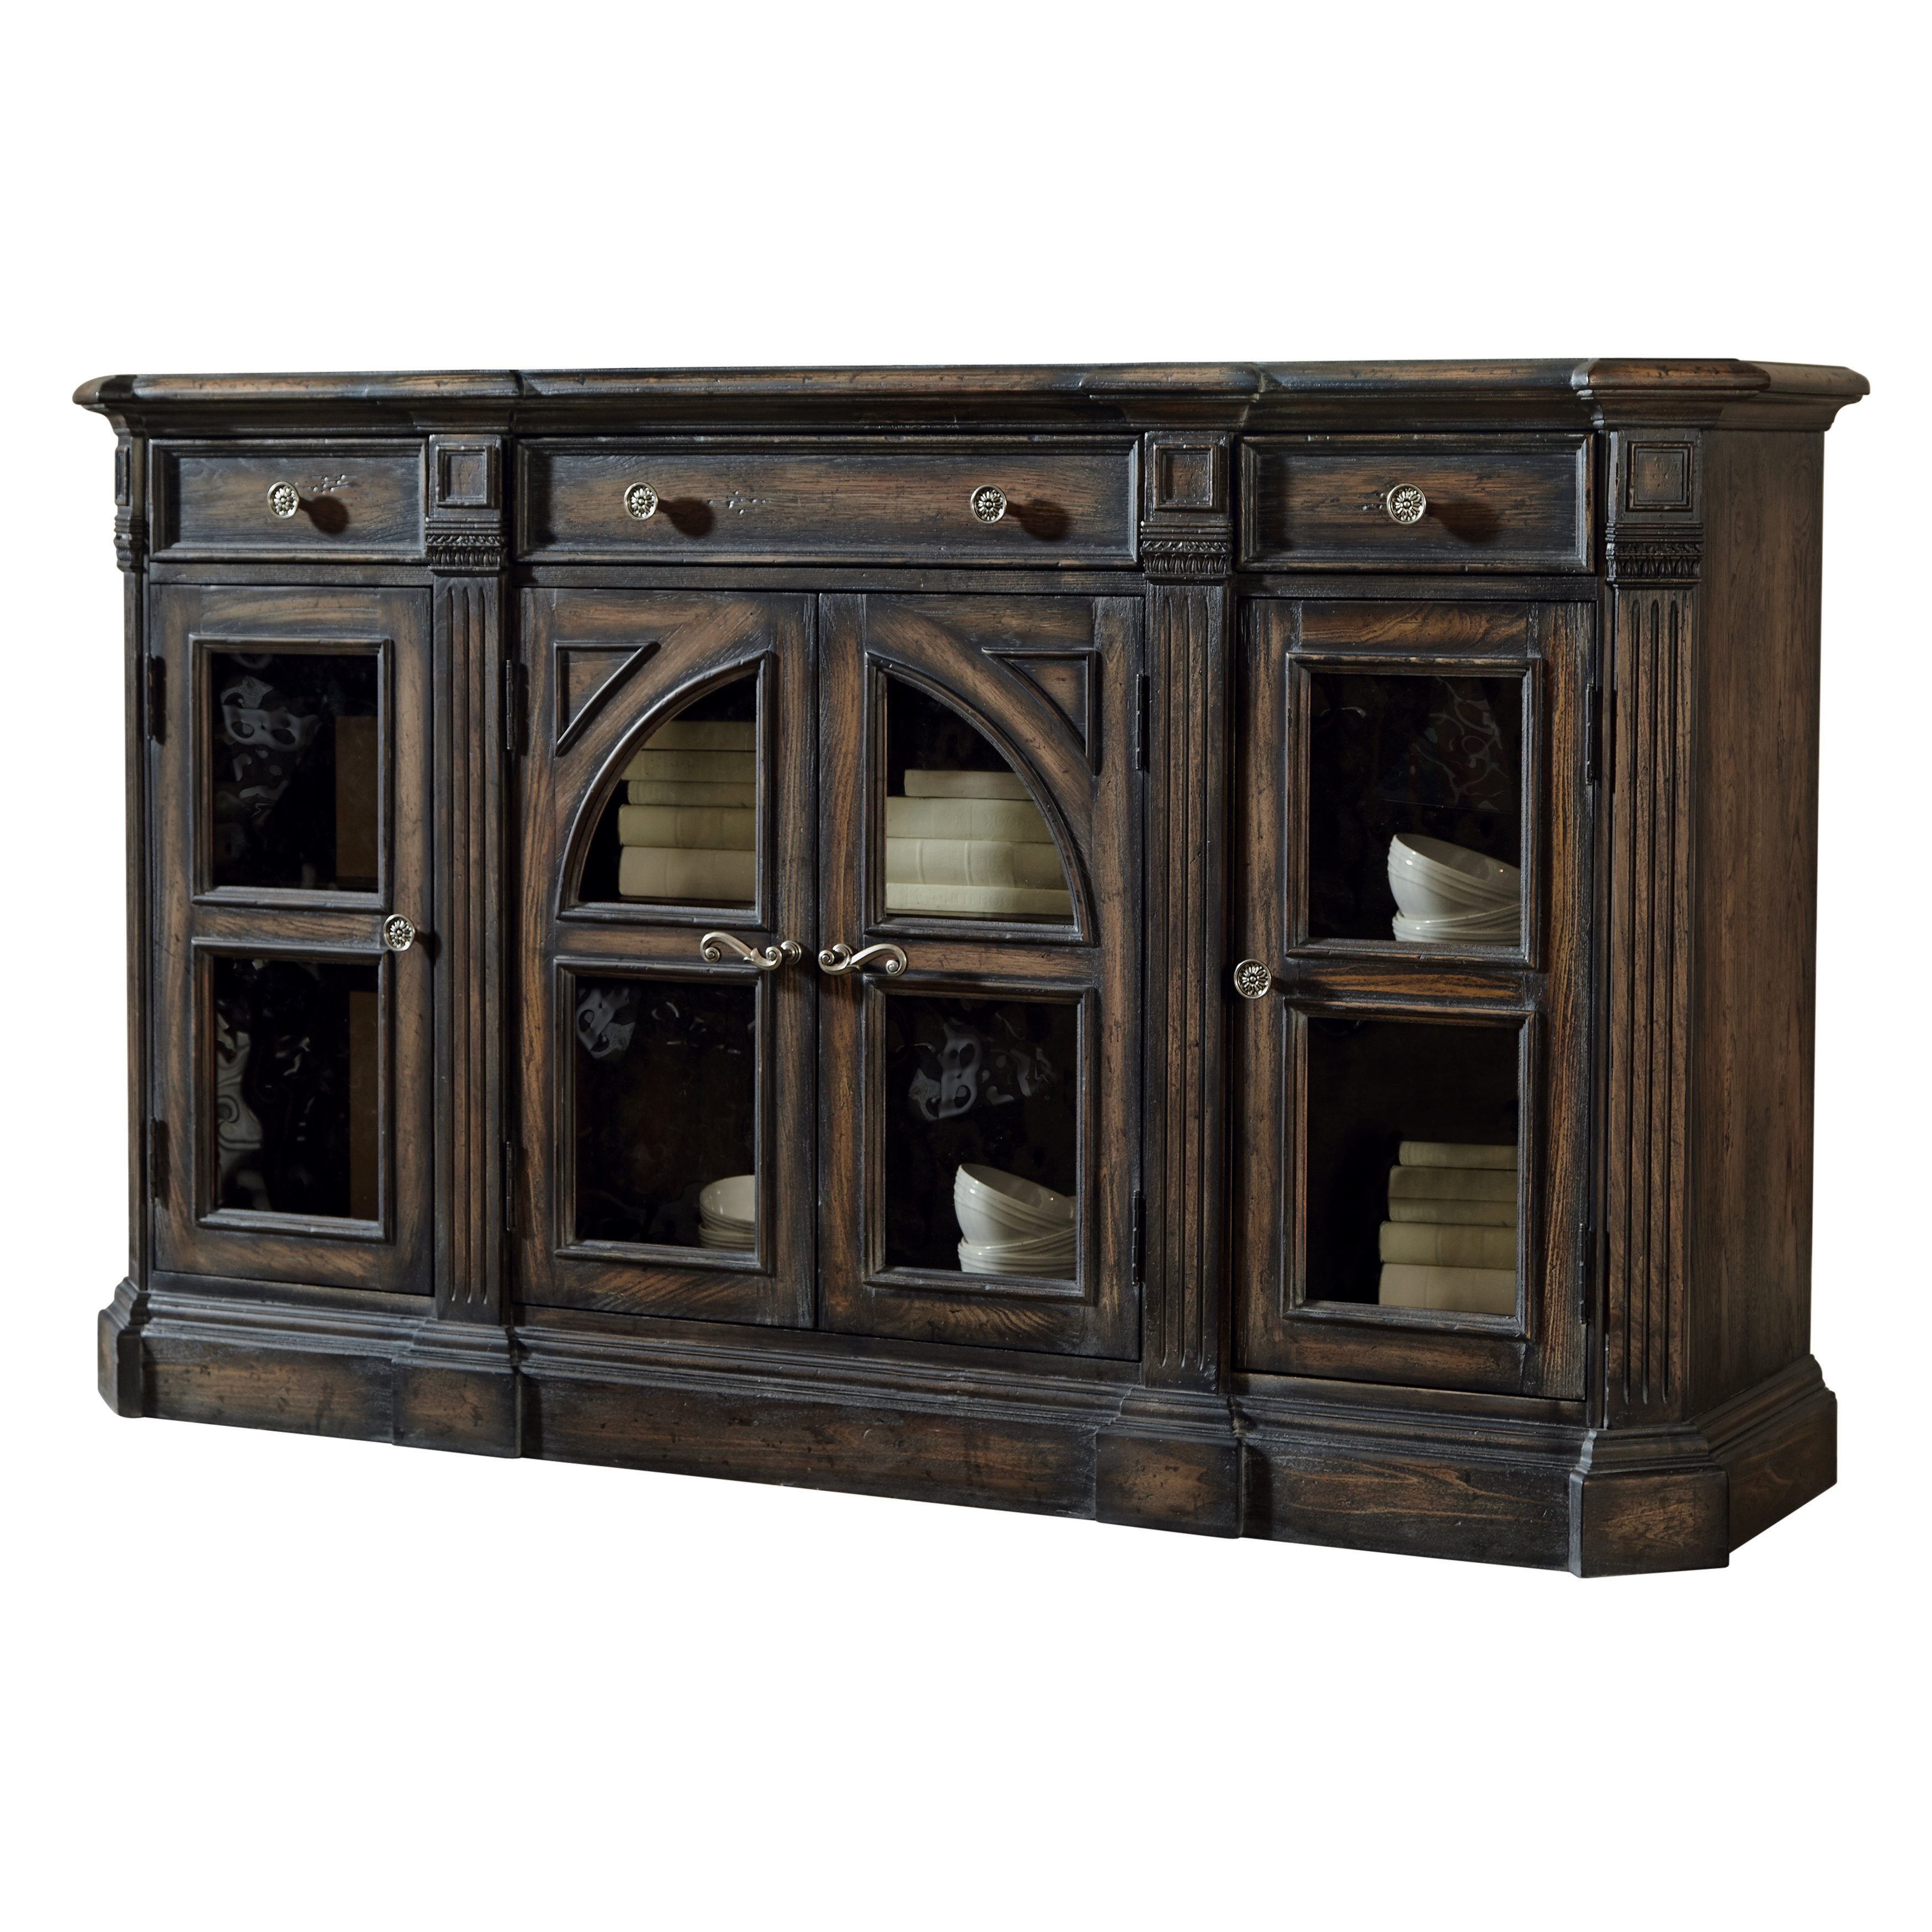 Delmar Sideboard & Reviews | Joss & Main within Carved 4 Door Metal Frame Sideboards (Image 20 of 30)